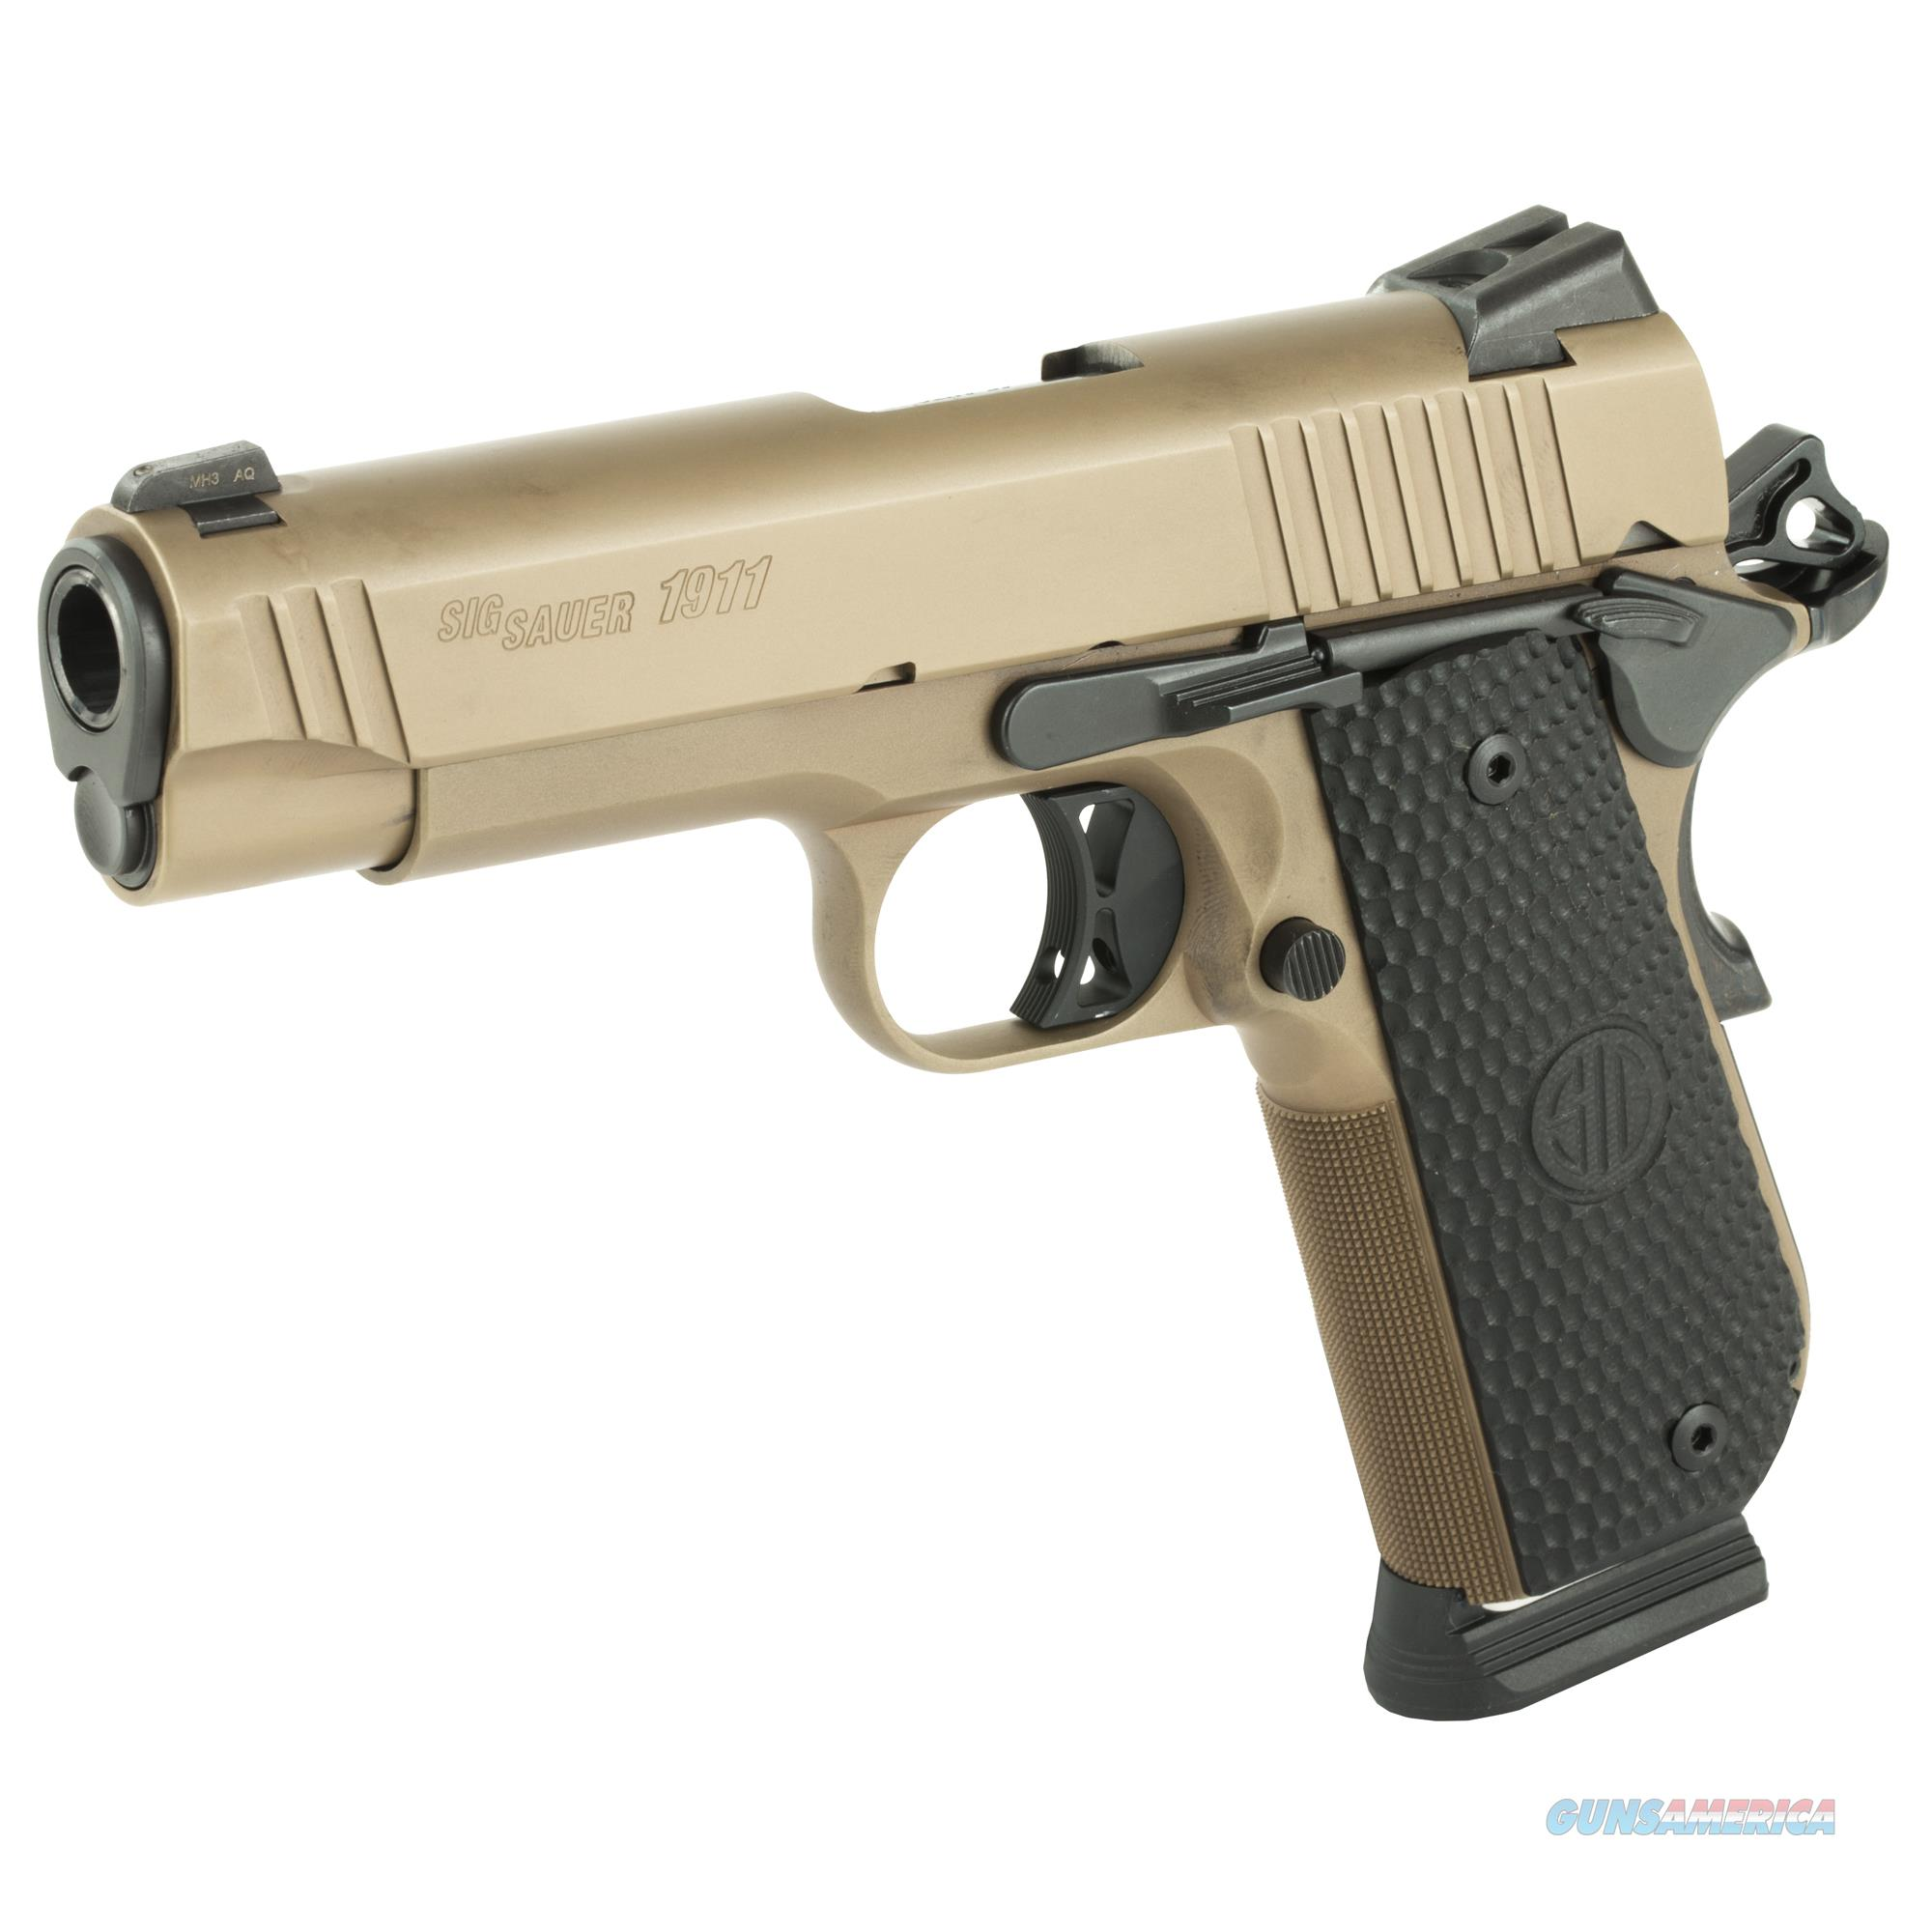 "Sig Sauer 1911 Fastback Emperor Scorpion Carry .45 ACP 4.2"" 8+1 Night Sights - New in Case!  Guns > Pistols > Sig - Sauer/Sigarms Pistols > 1911"